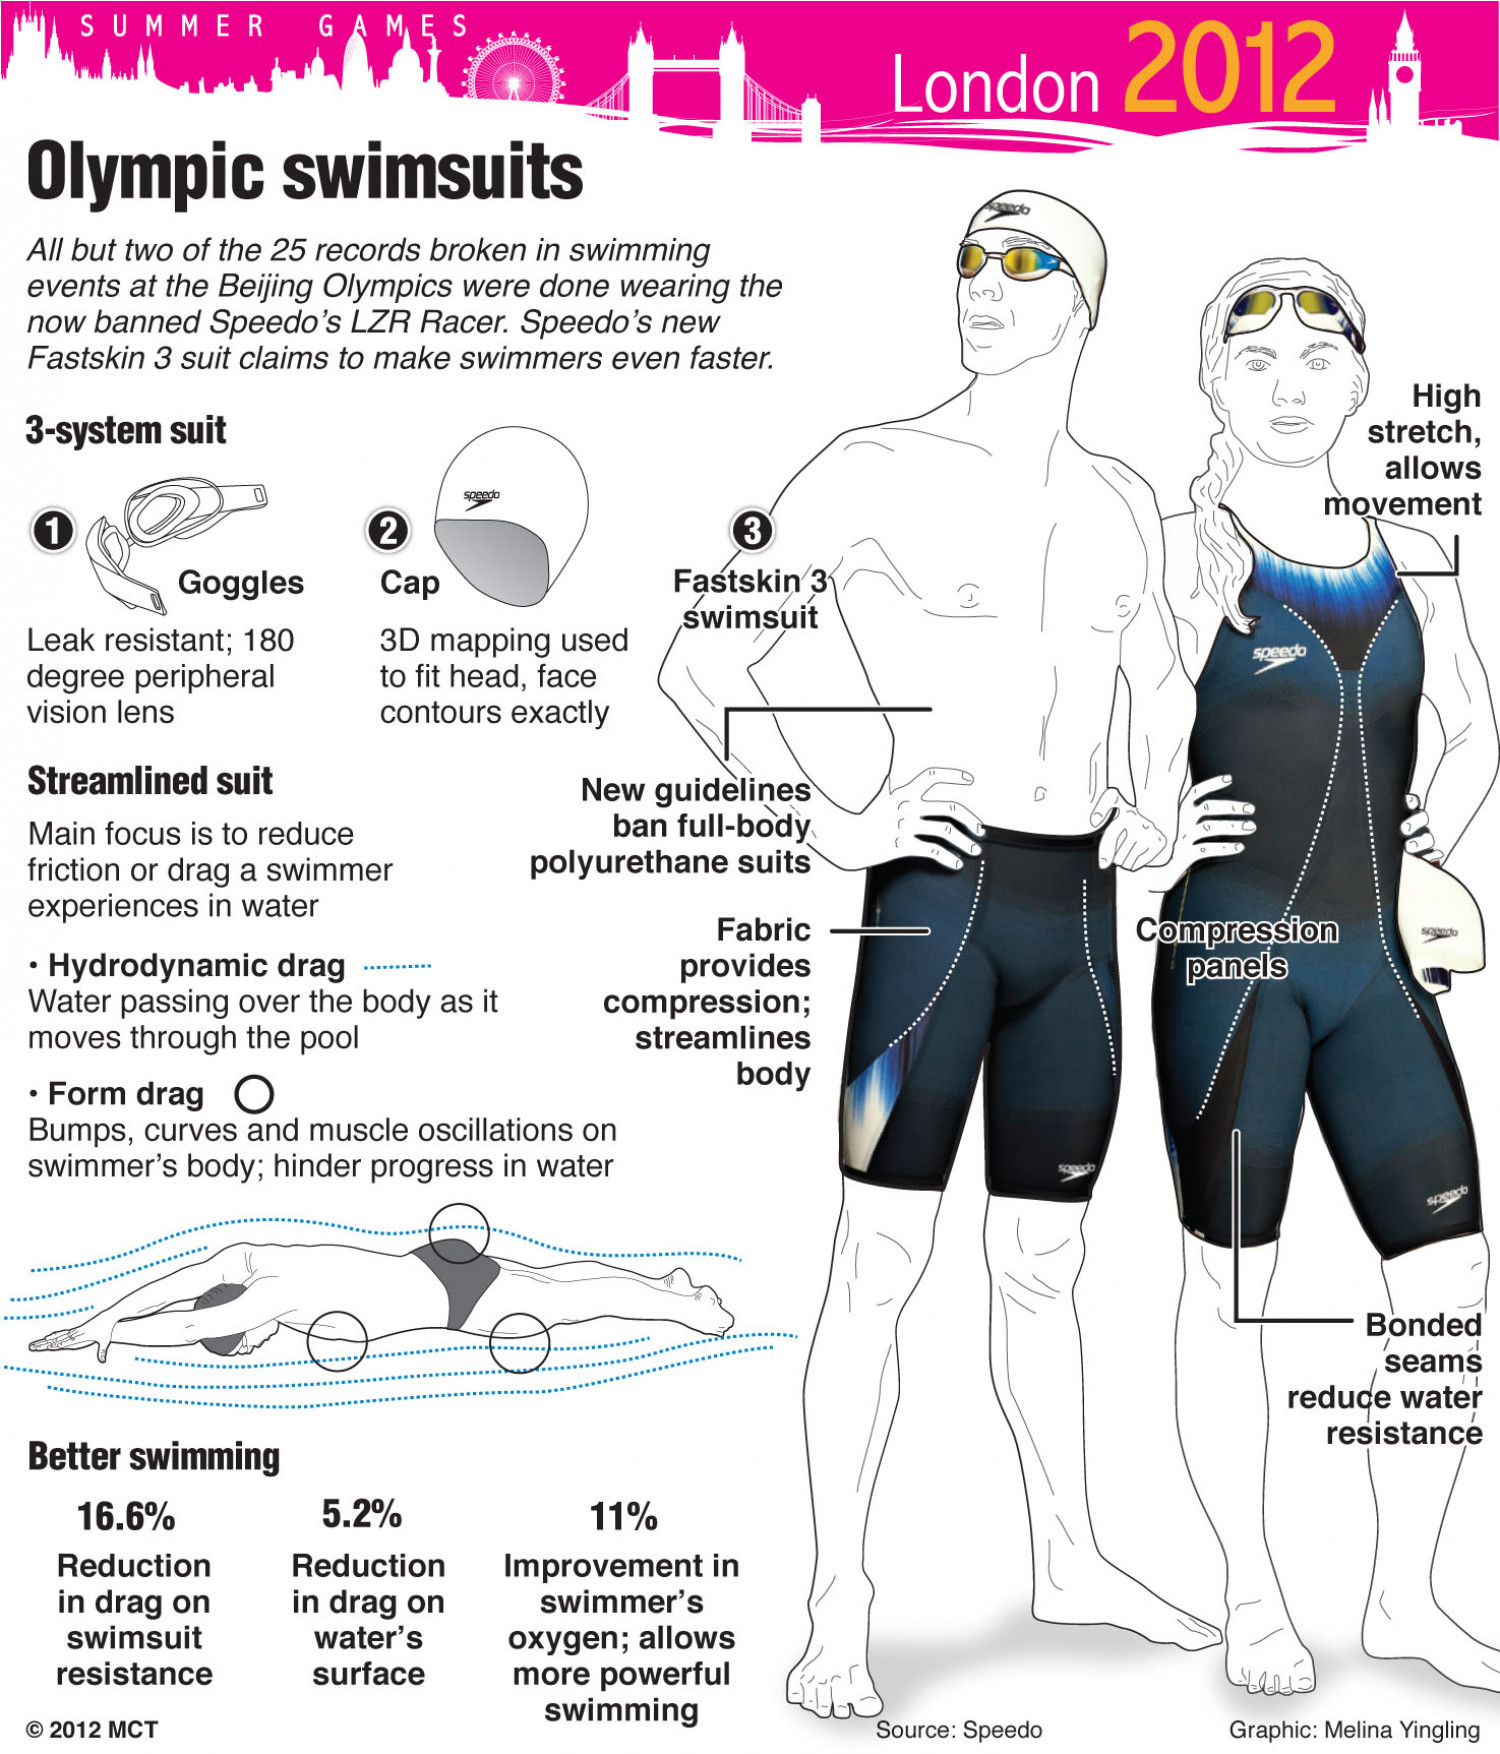 Olympic Swimsuits Infographic